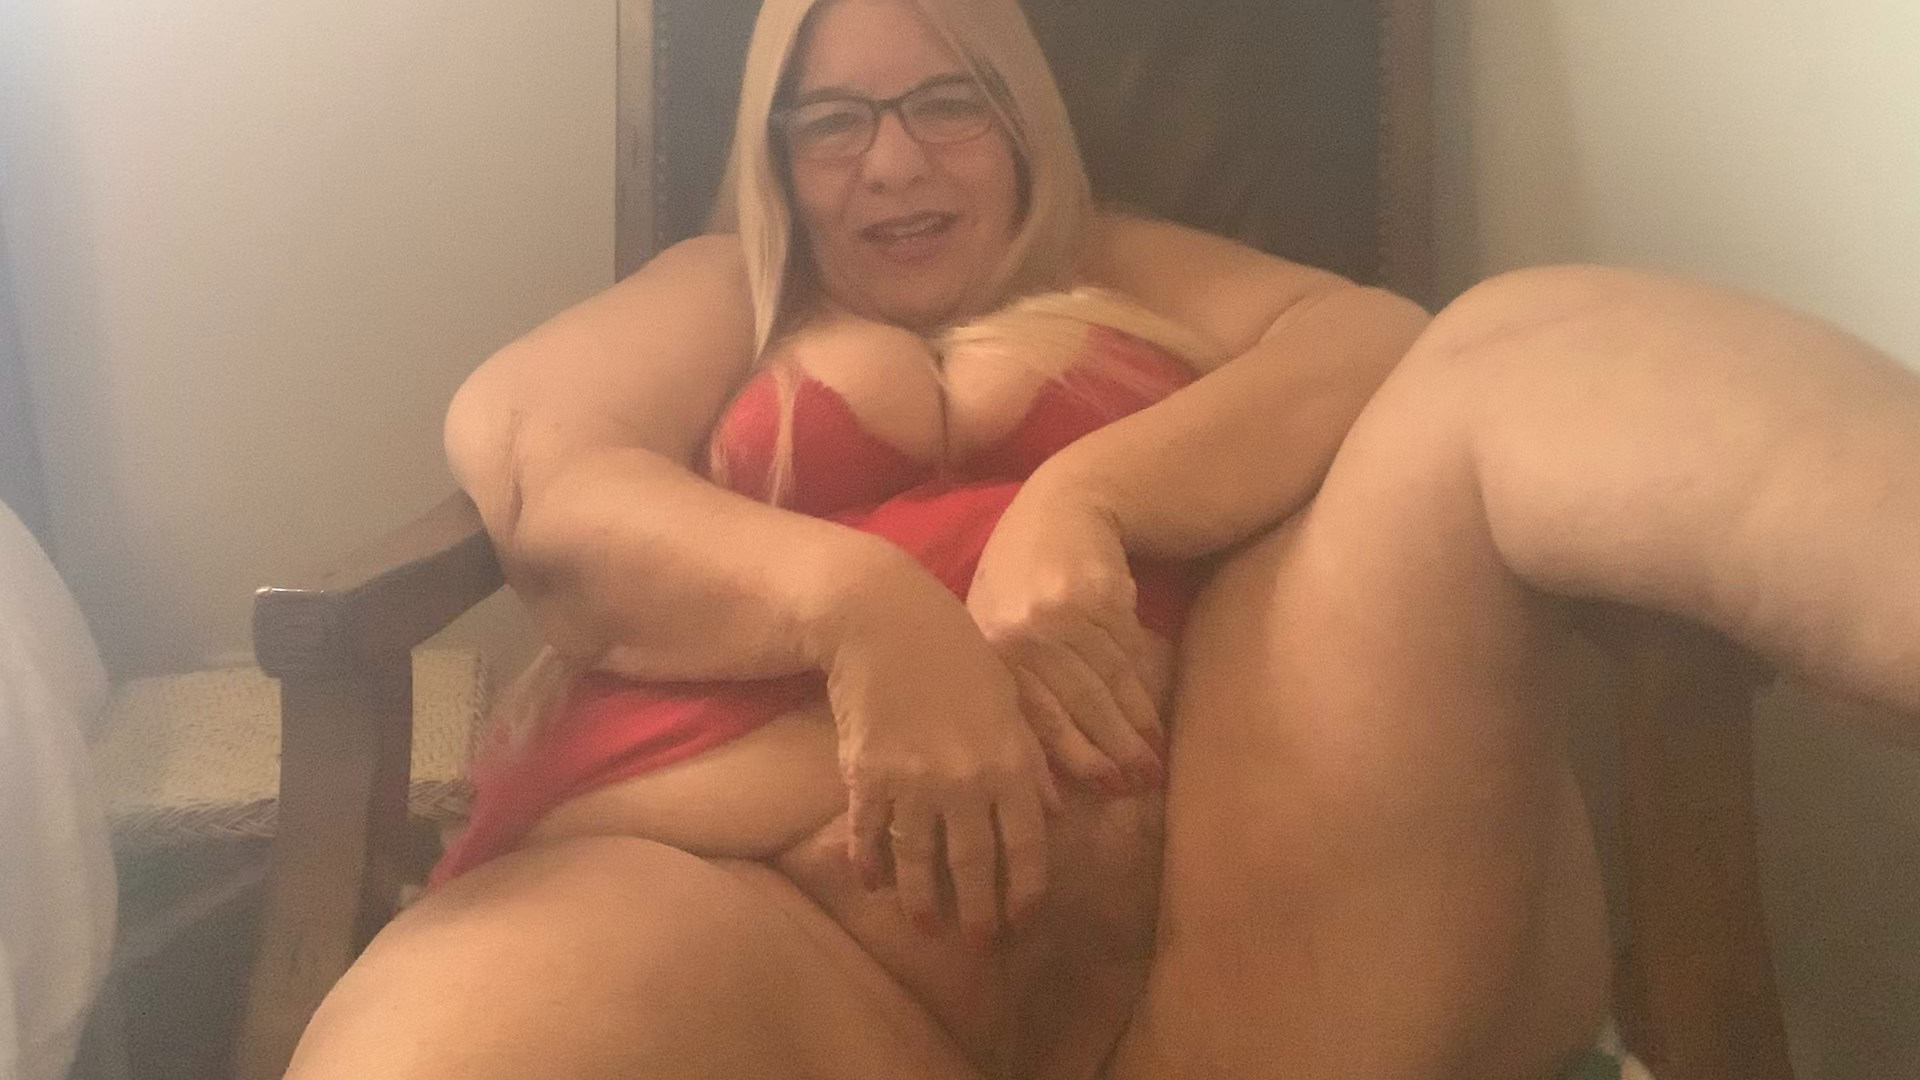 BBW Sweet Aimee Luv - A nice Phat Surprise for you Baby